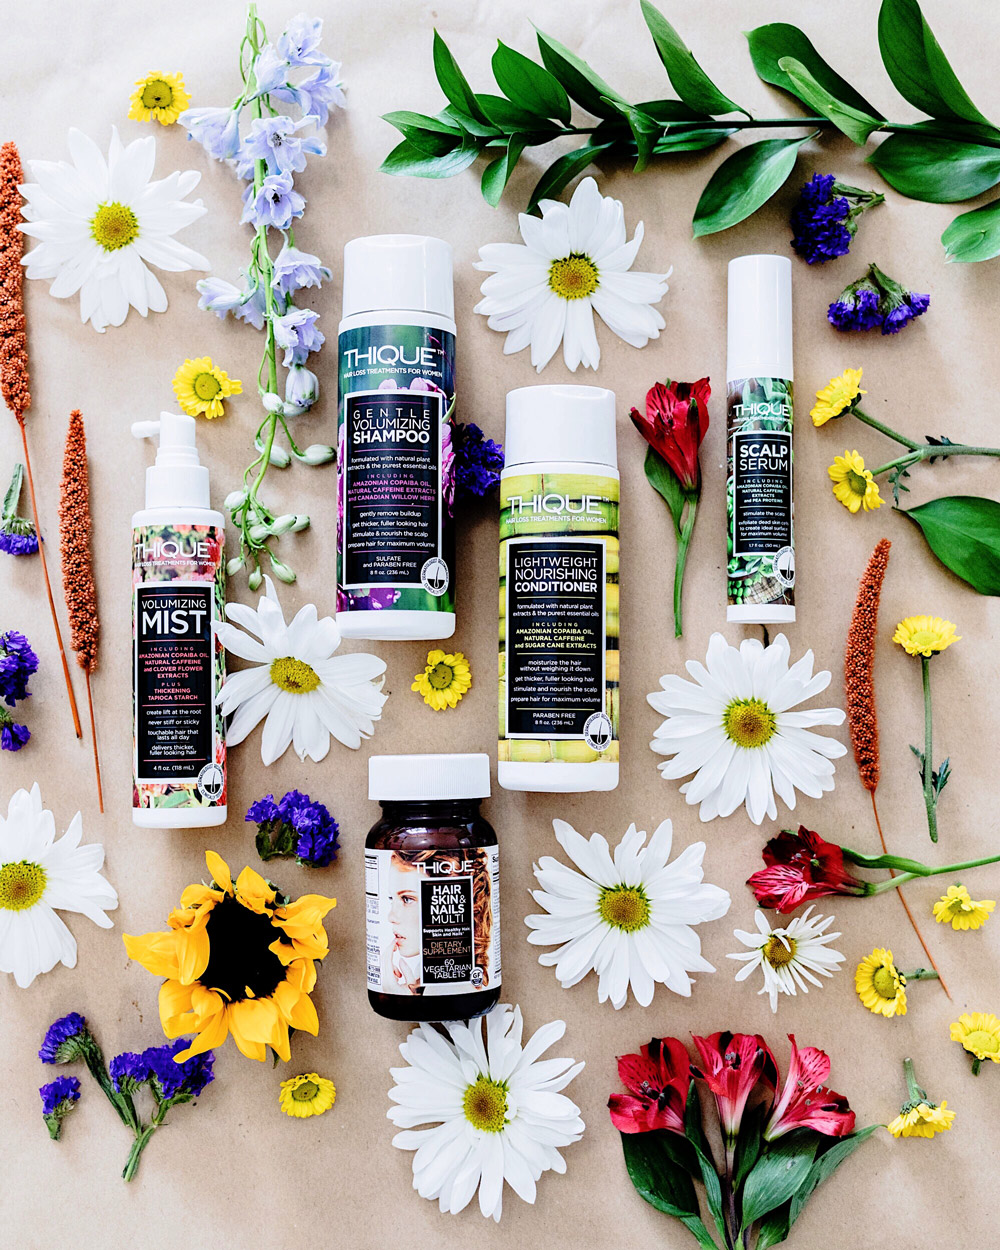 Self-care can start with your hair   THIQUE Hair Care Product Review